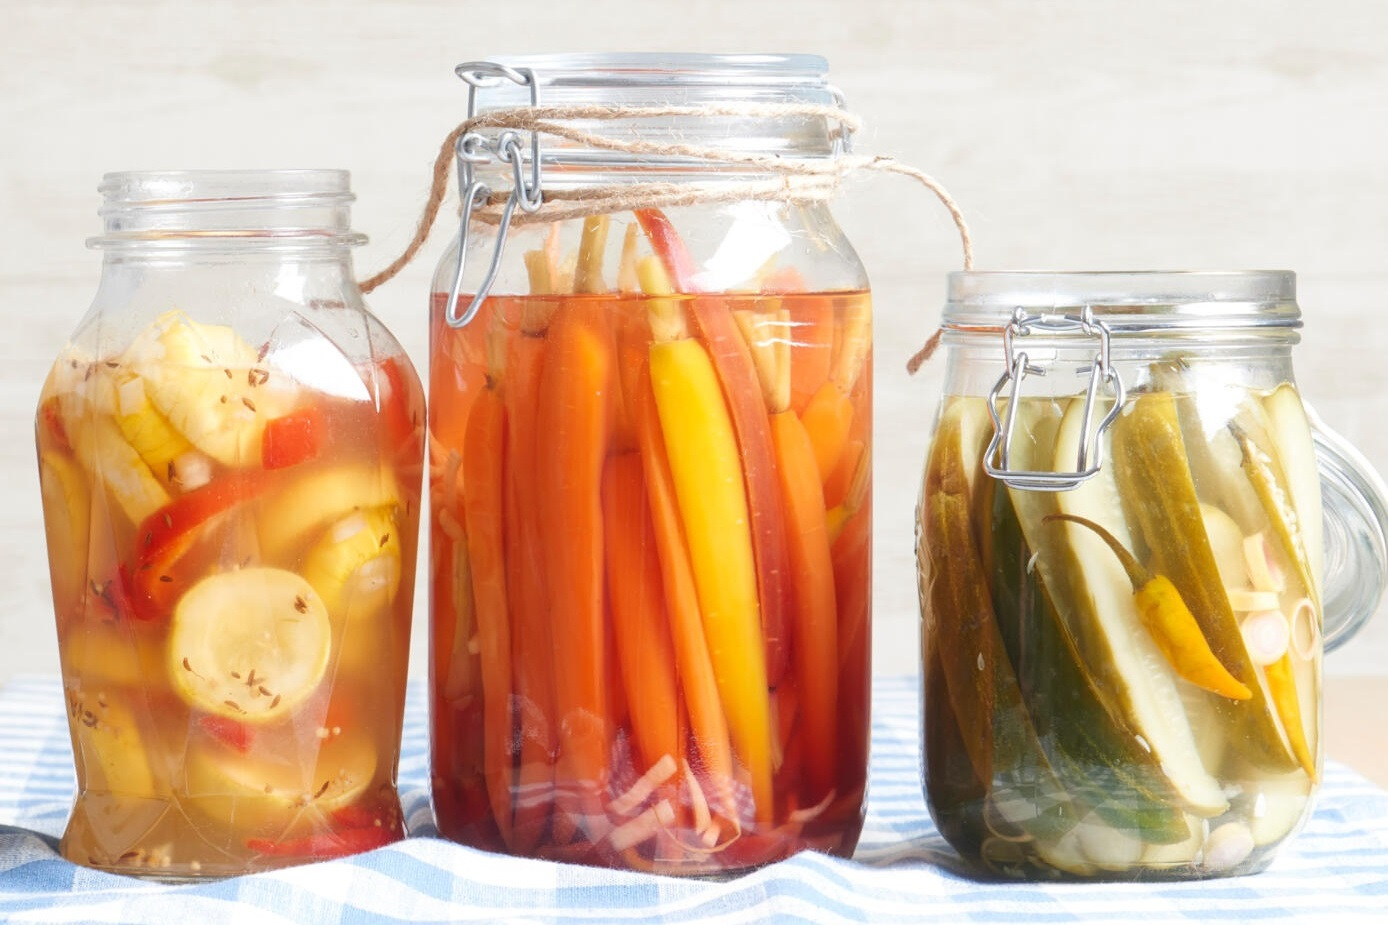 three glass jars full of pickled squash, carrots, and cucumbers